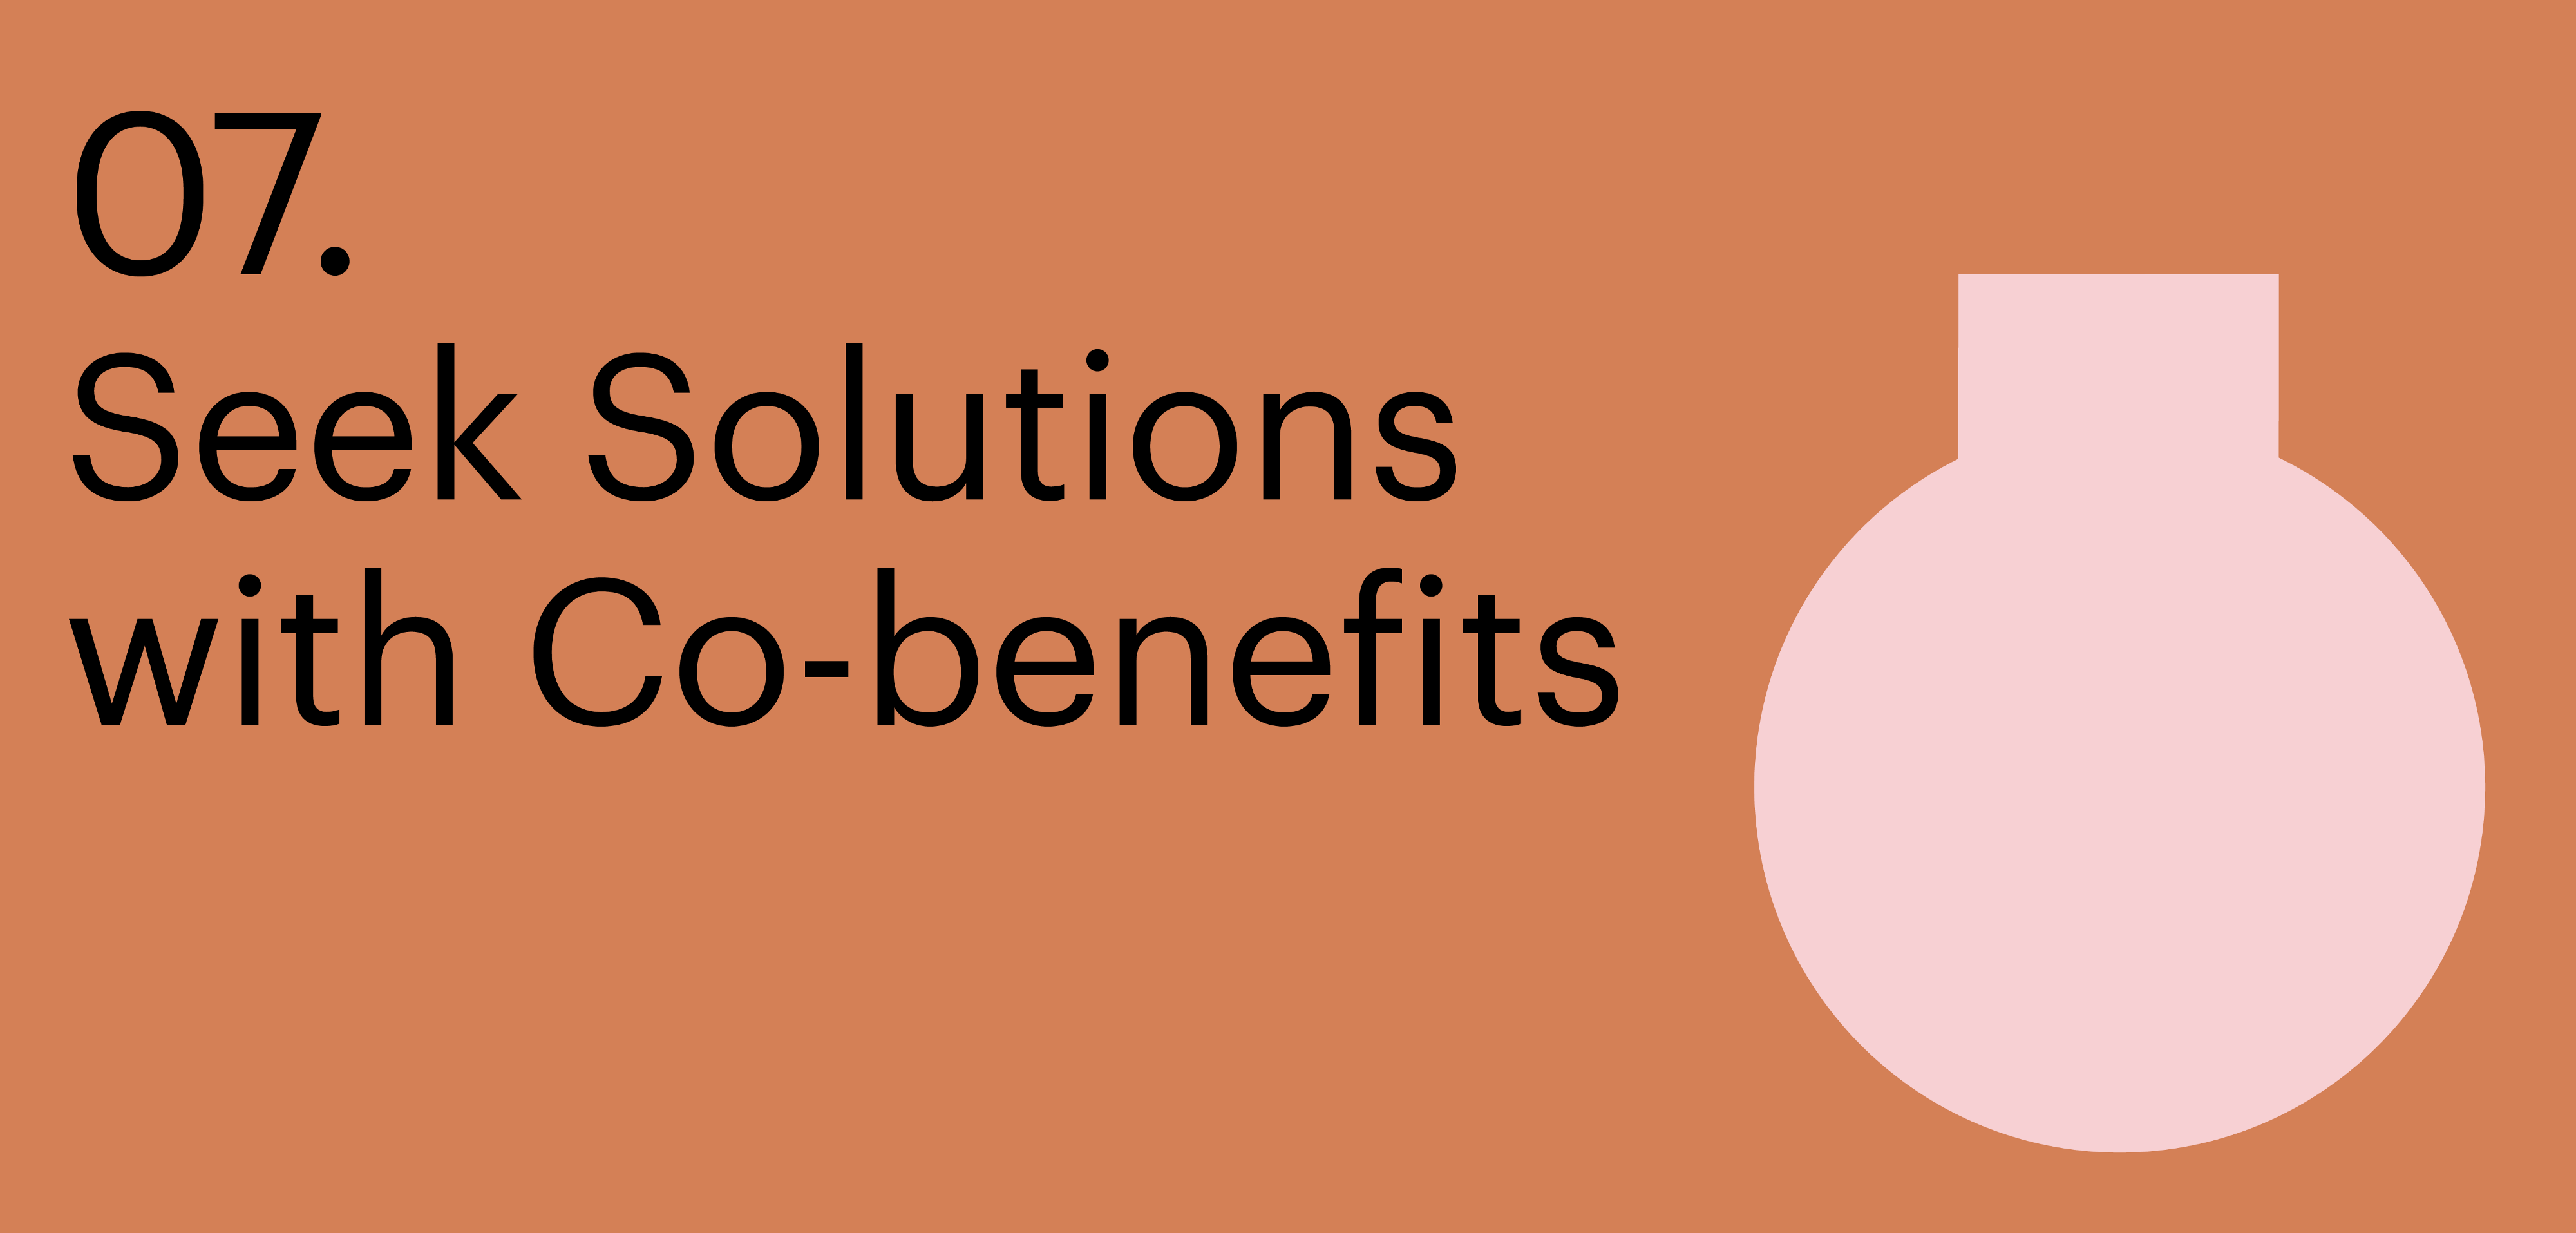 Principle seven. Seek solutions with Co-benefits